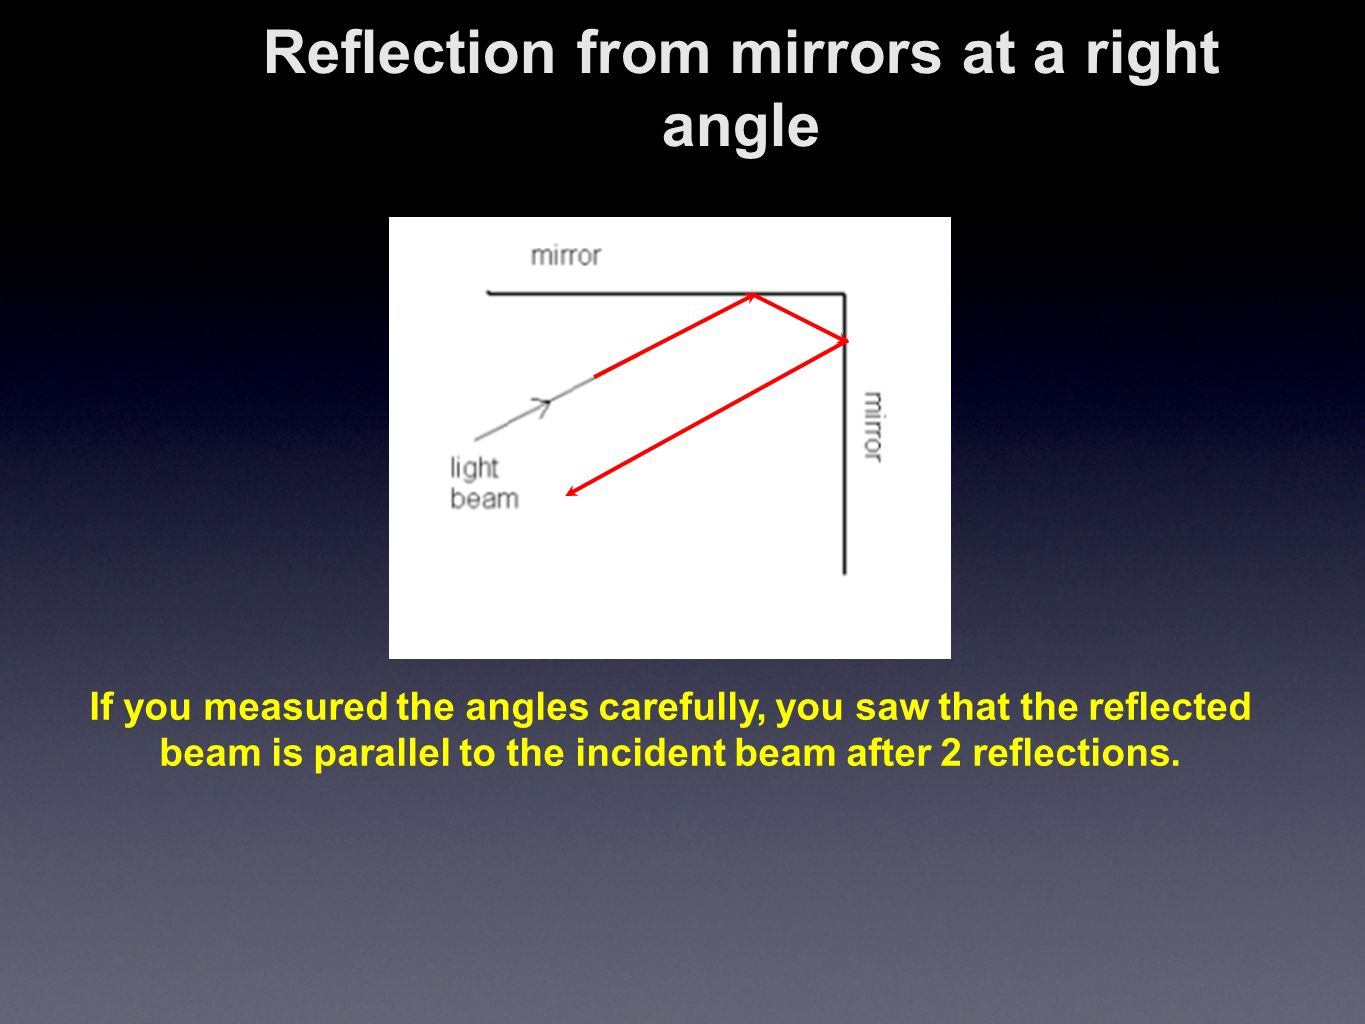 hight resolution of 6 reflection from mirrors at a right angle if you measured the angles carefully you saw that the reflected beam is parallel to the incident beam after 2